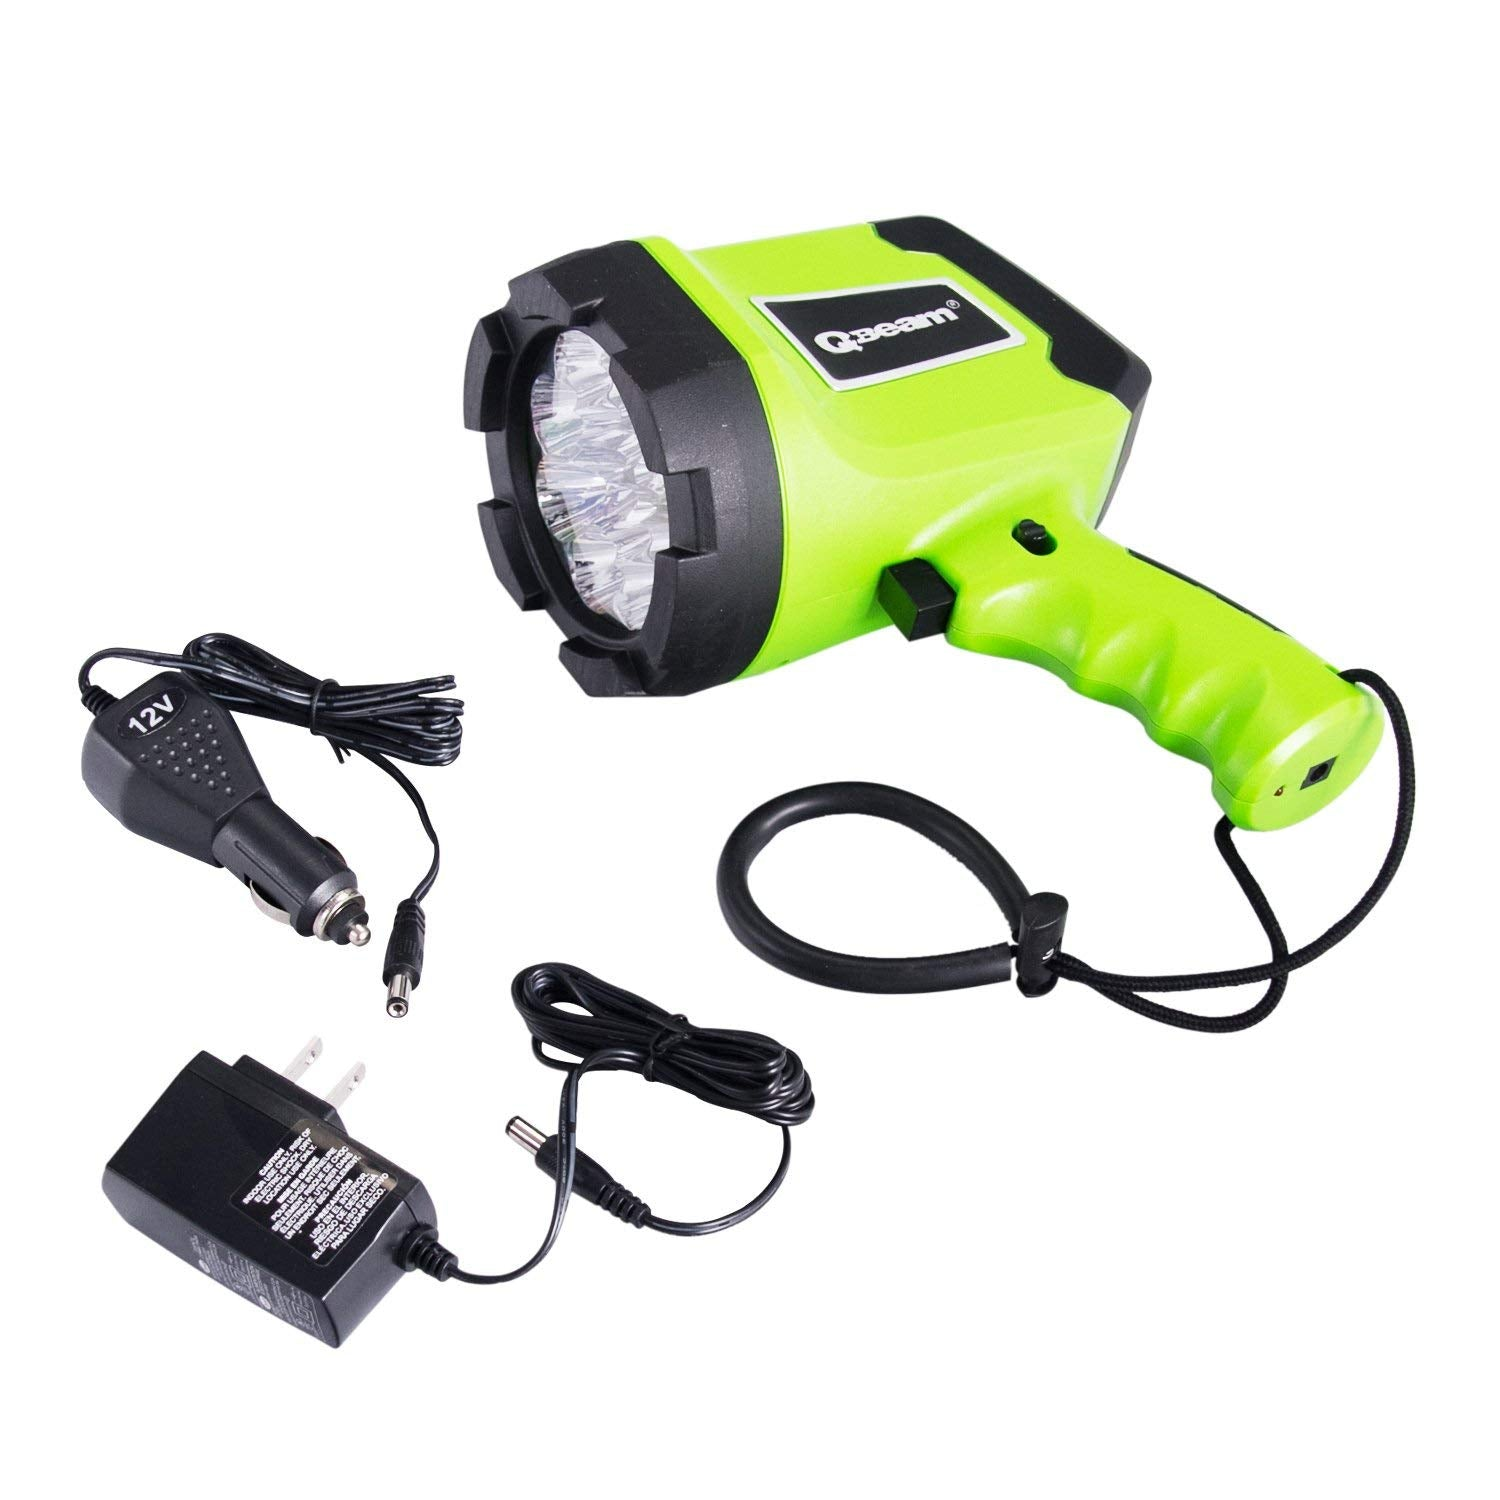 Qbeam LED Rechargeable Spotlight ,12 LED Spotlight Offroad Automotive/Garage /Emergency/ Boating/Fishing/Hunting/Camping/Hiking/Patrolling 800-2701-1